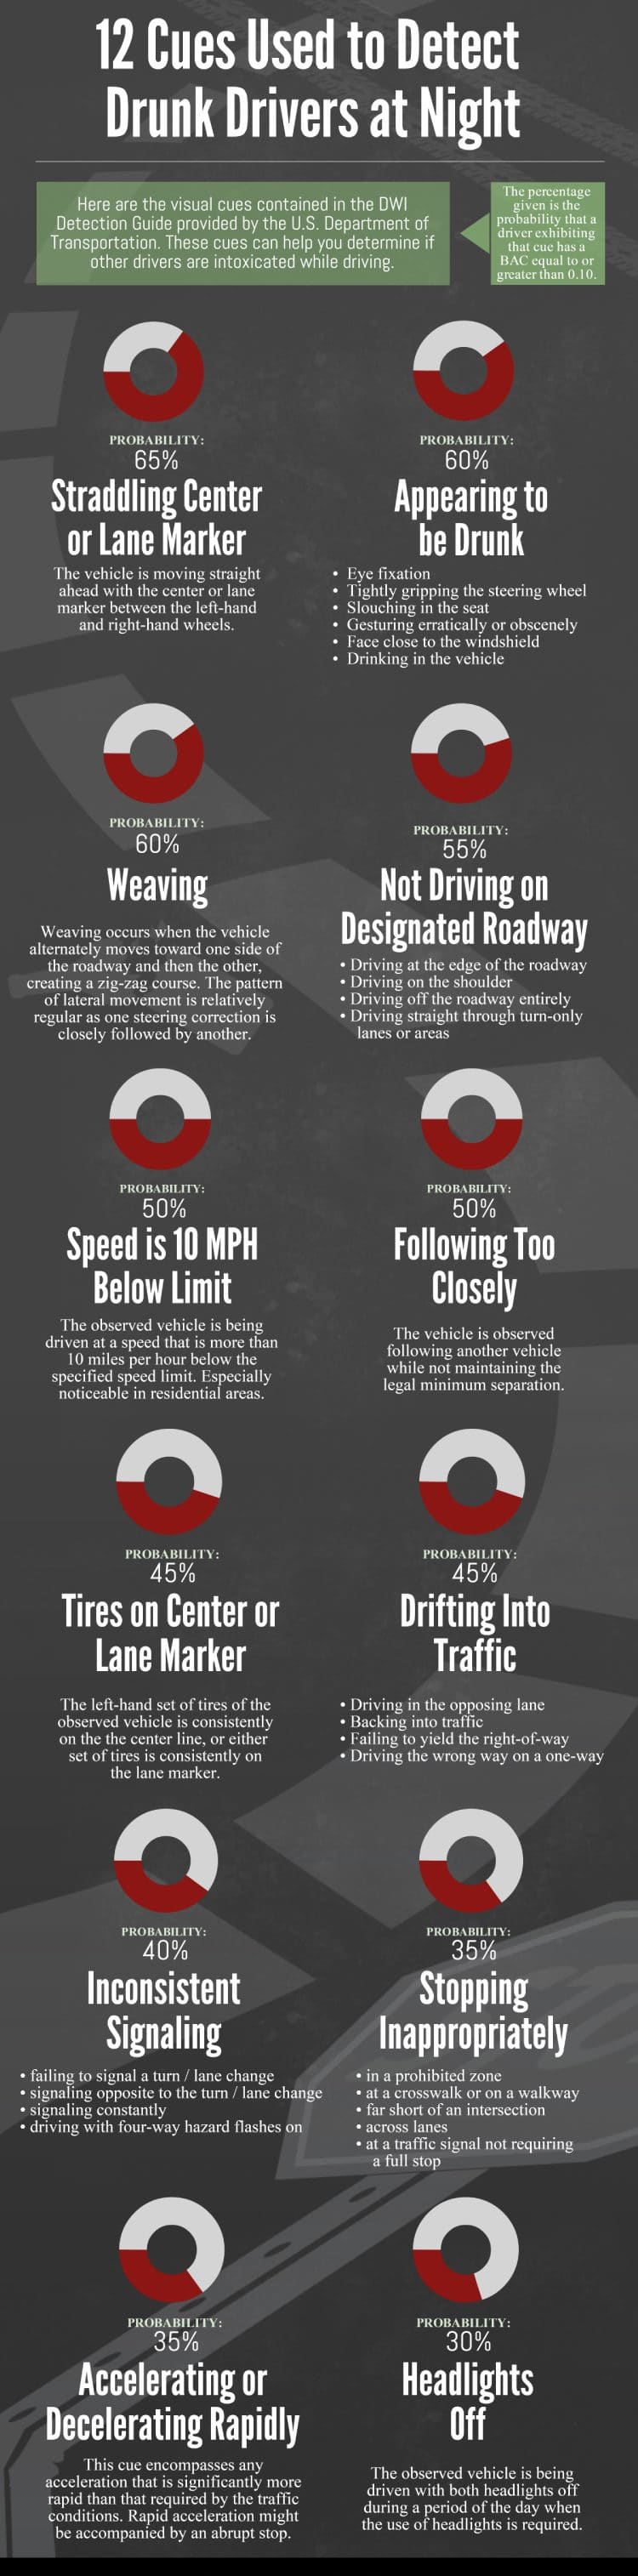 DWI & DUI Drivers Infographic